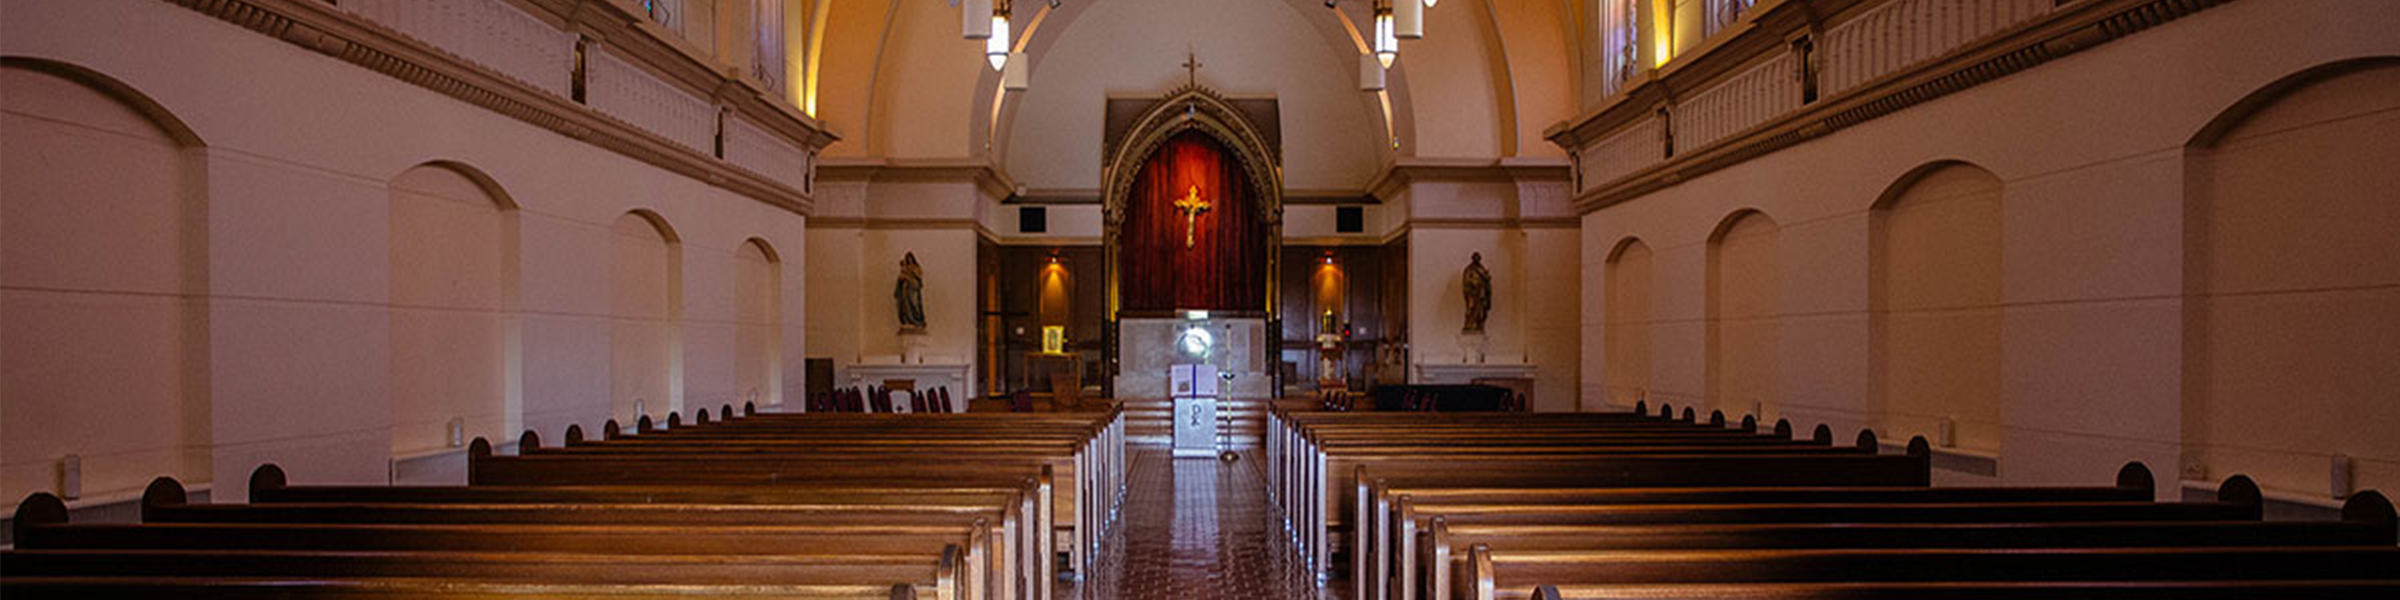 aisle in church with red curtains at altar